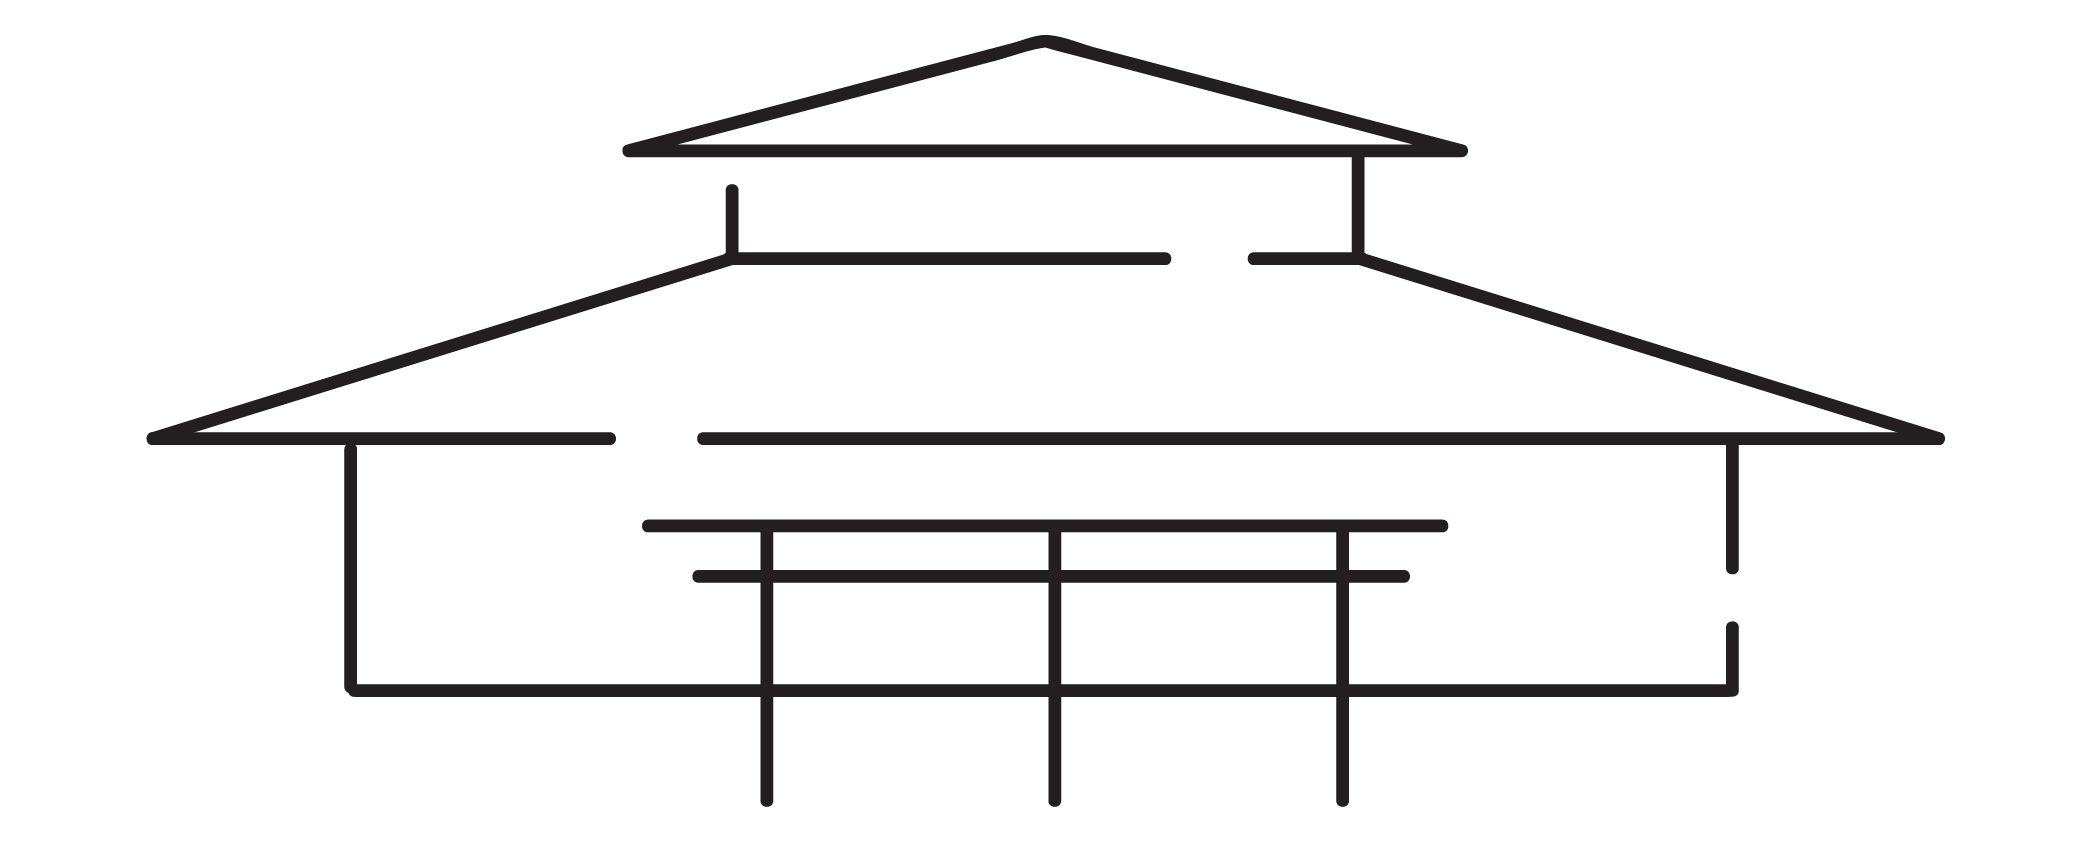 wireframe depiction of the asian & pacific cultural center building